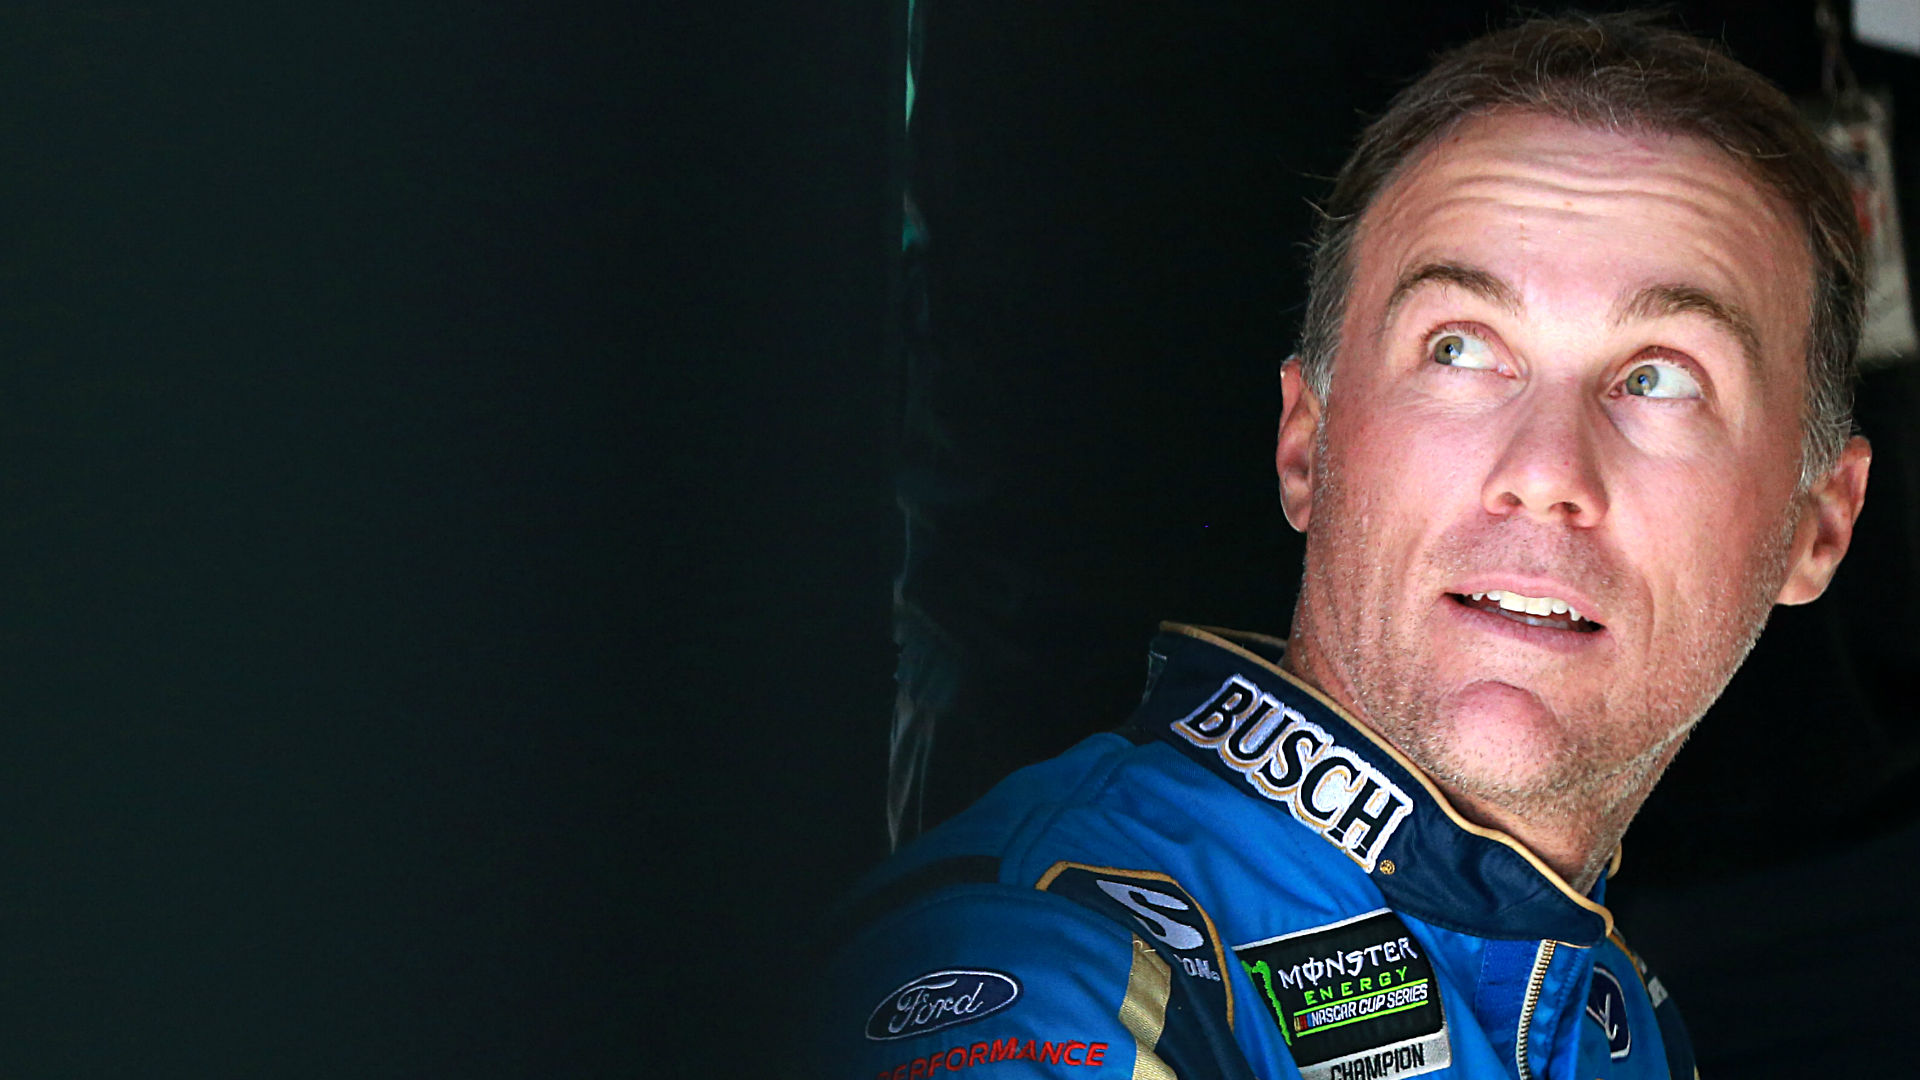 Kevin Harvick reflects on his career as milestone race approaches